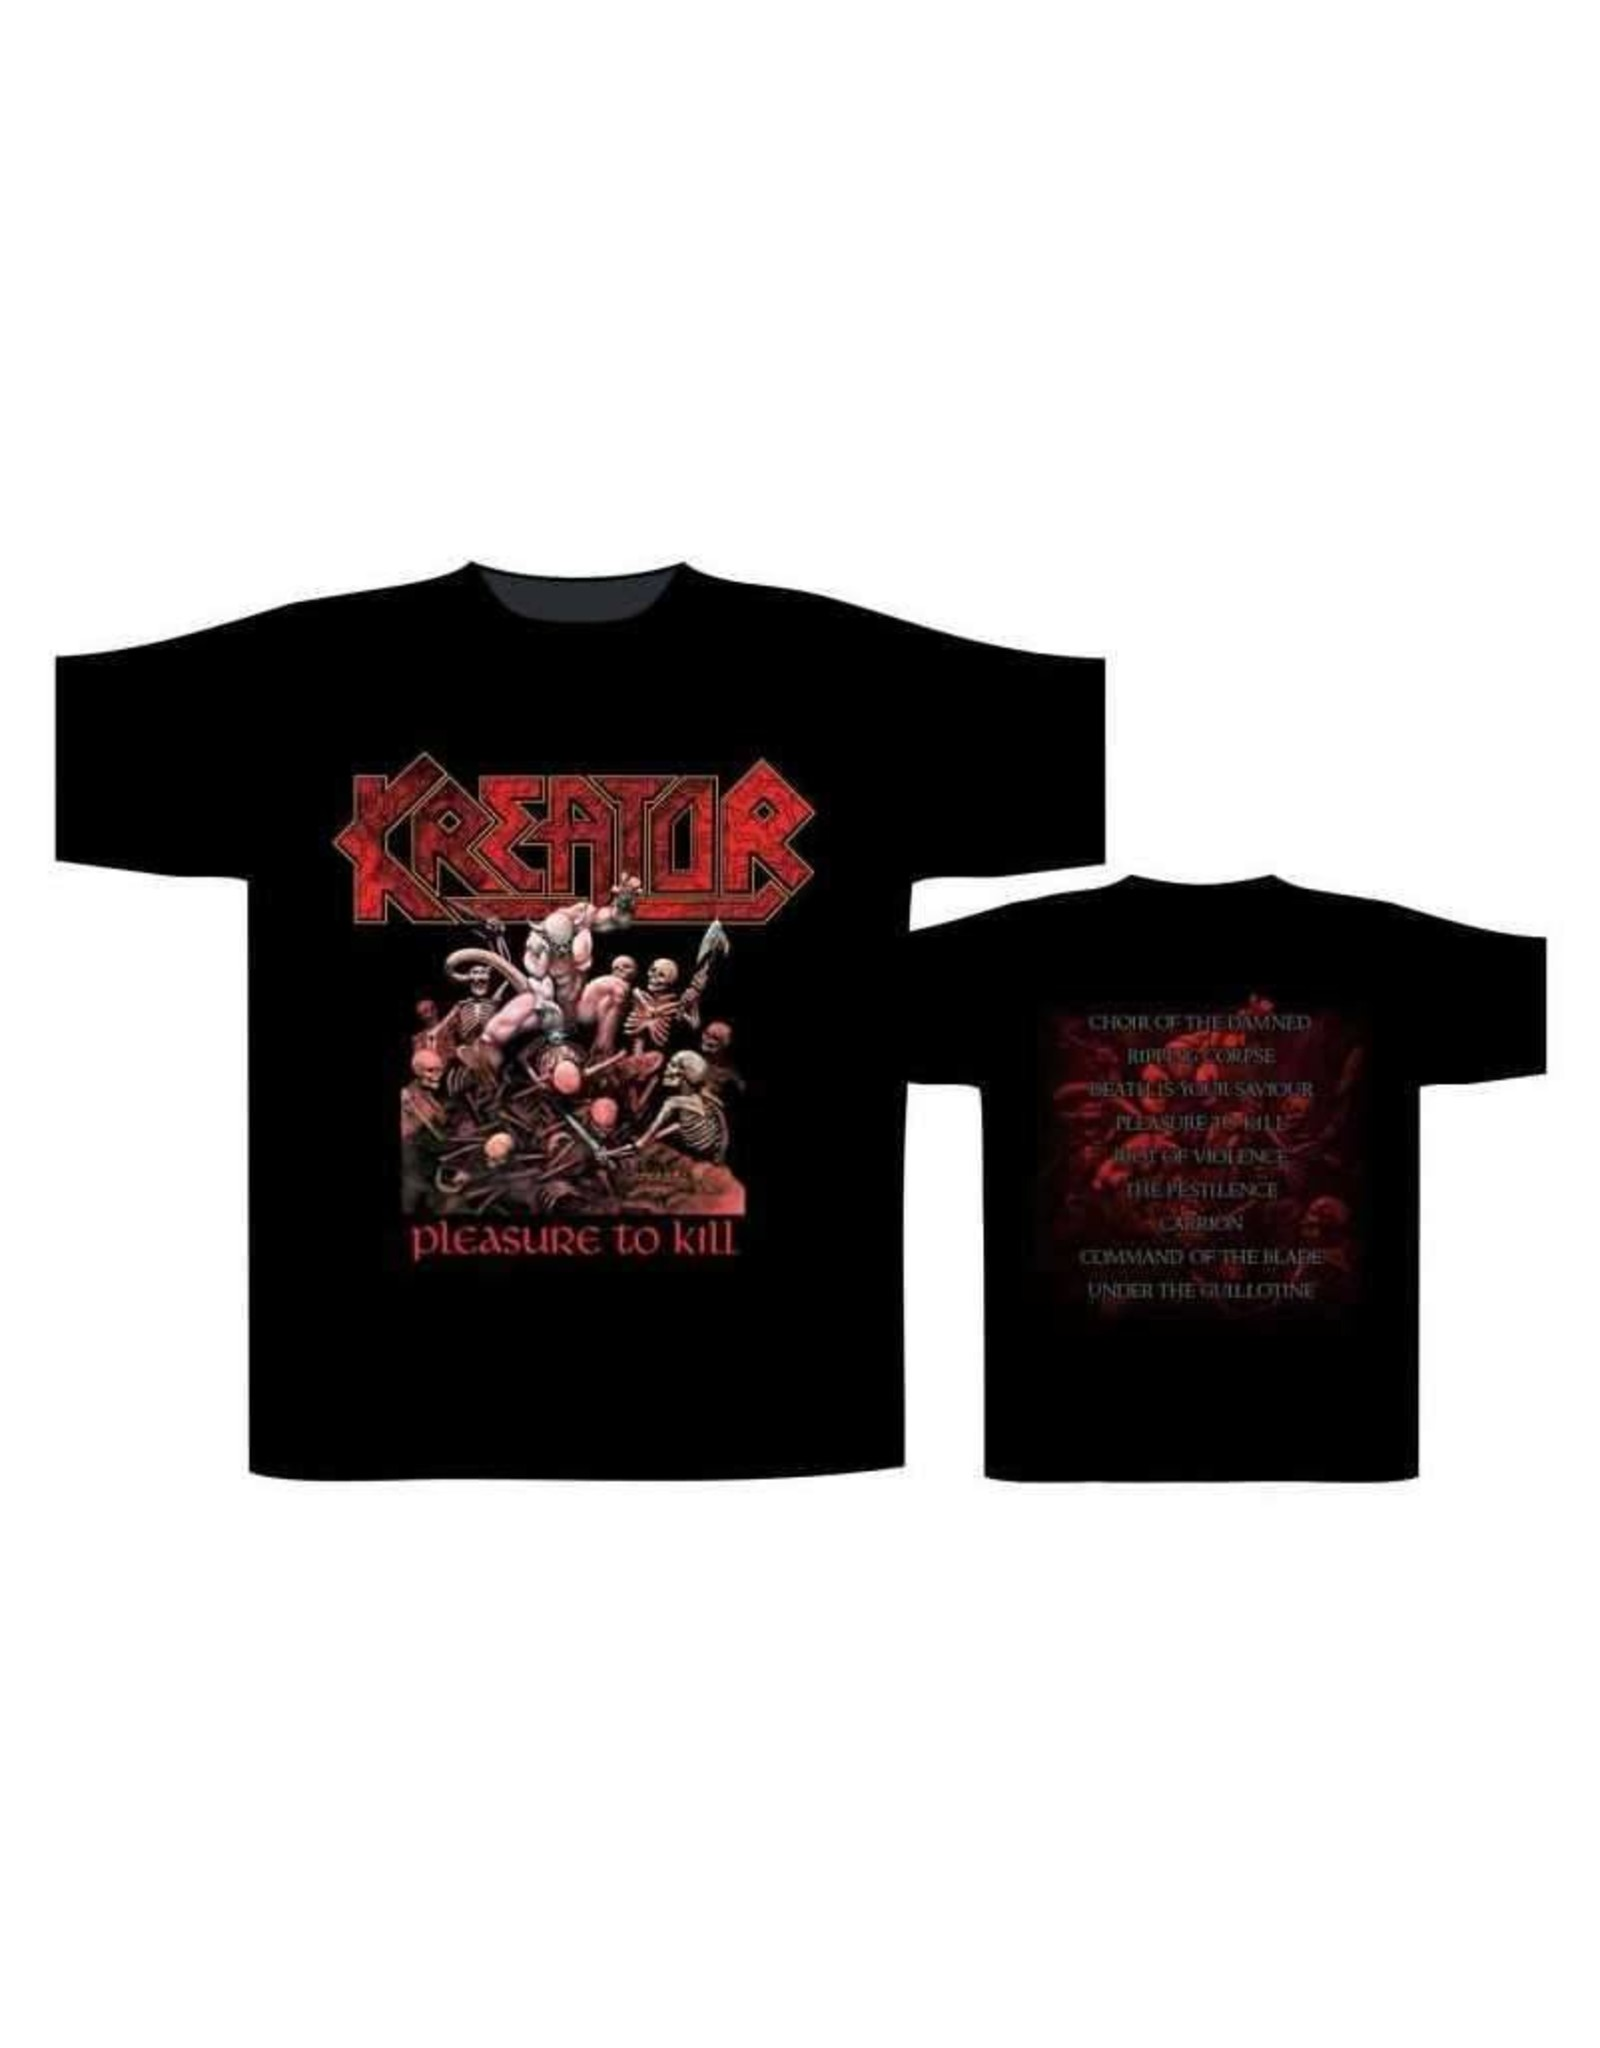 Kreator Pleasure To Kill T-Shirt